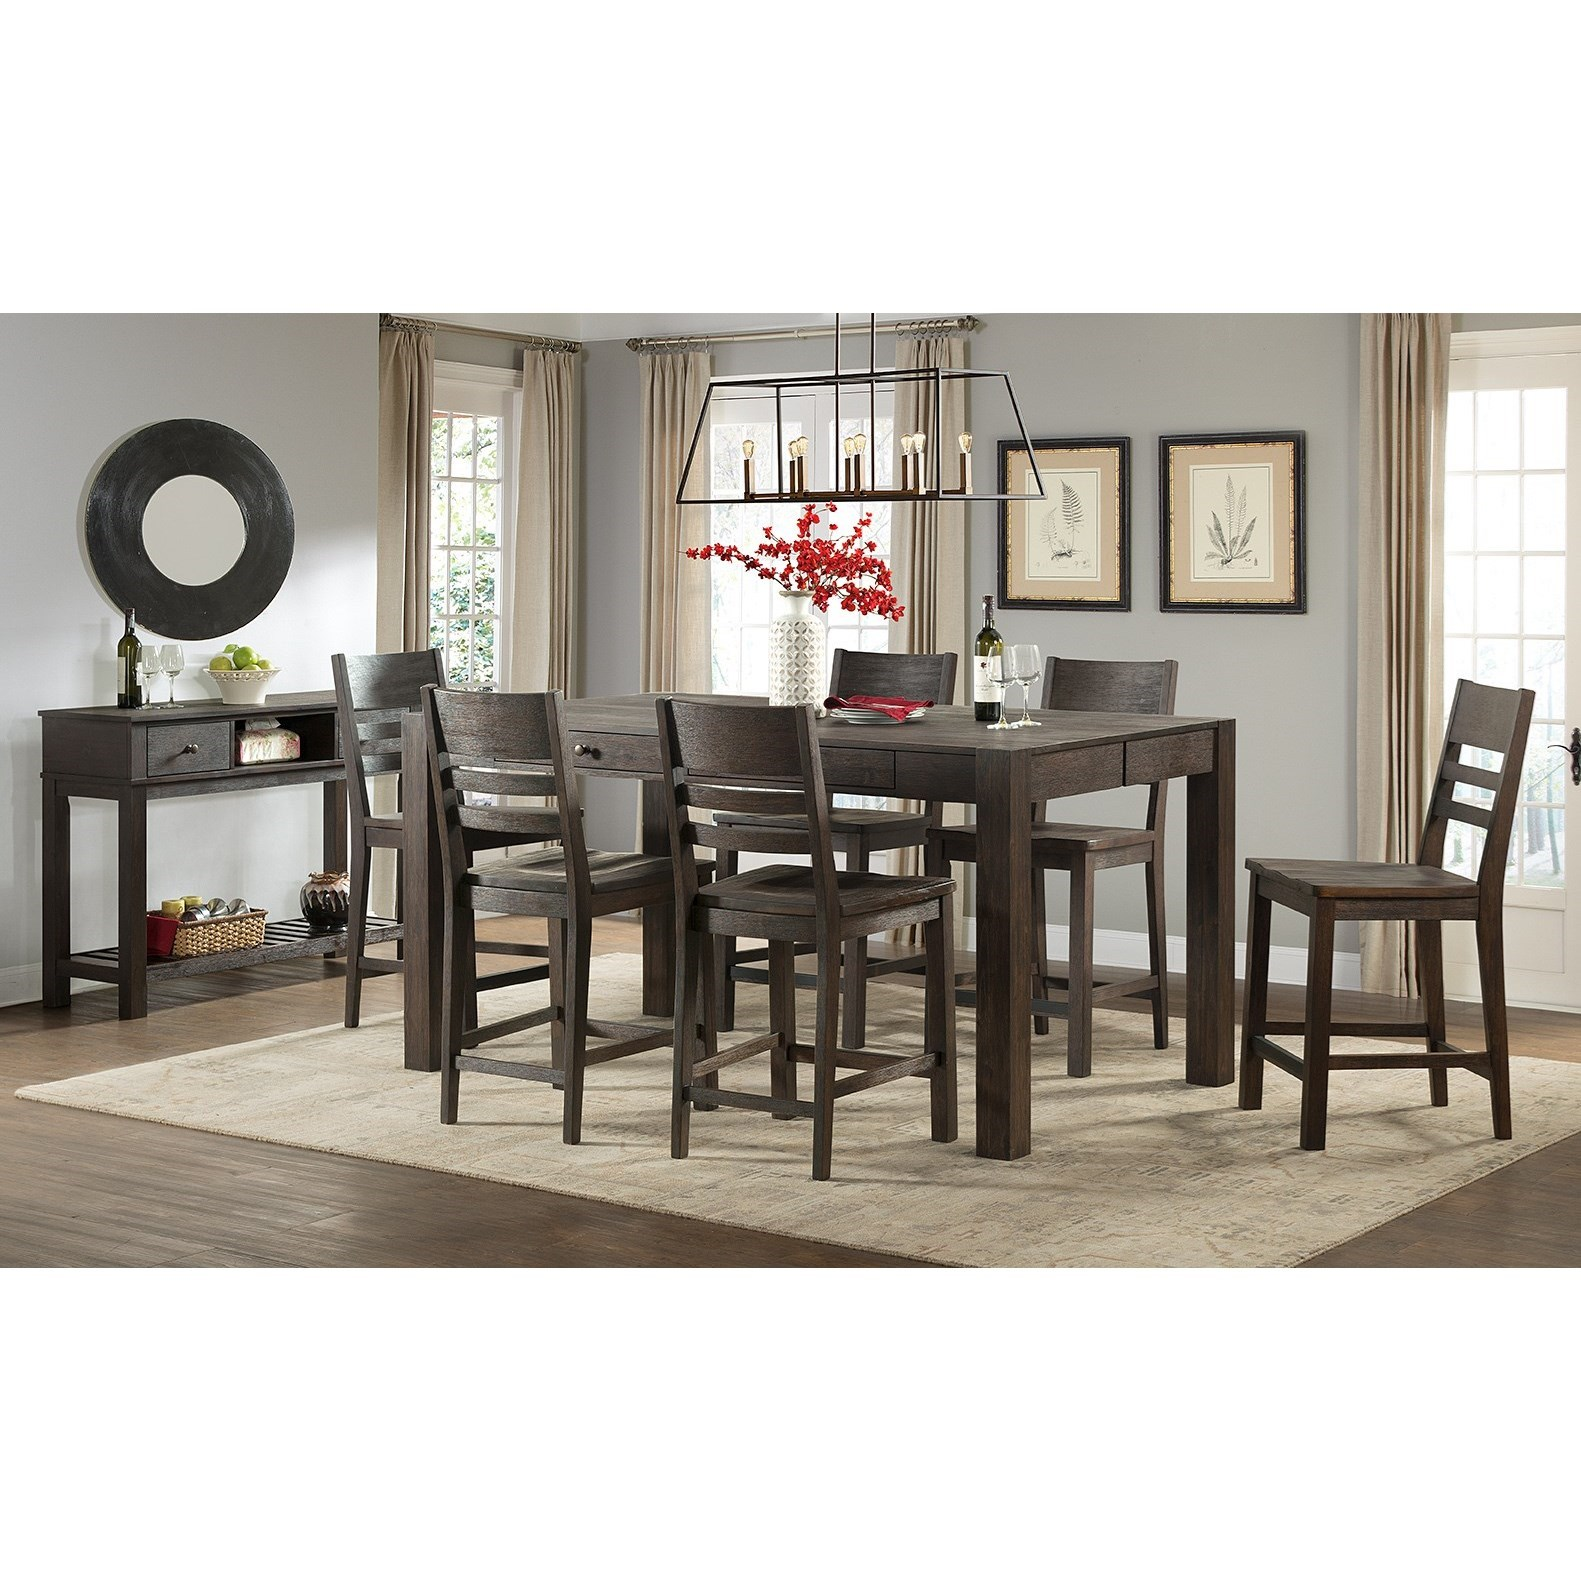 Salem Dining Room Group by Intercon at Rife's Home Furniture